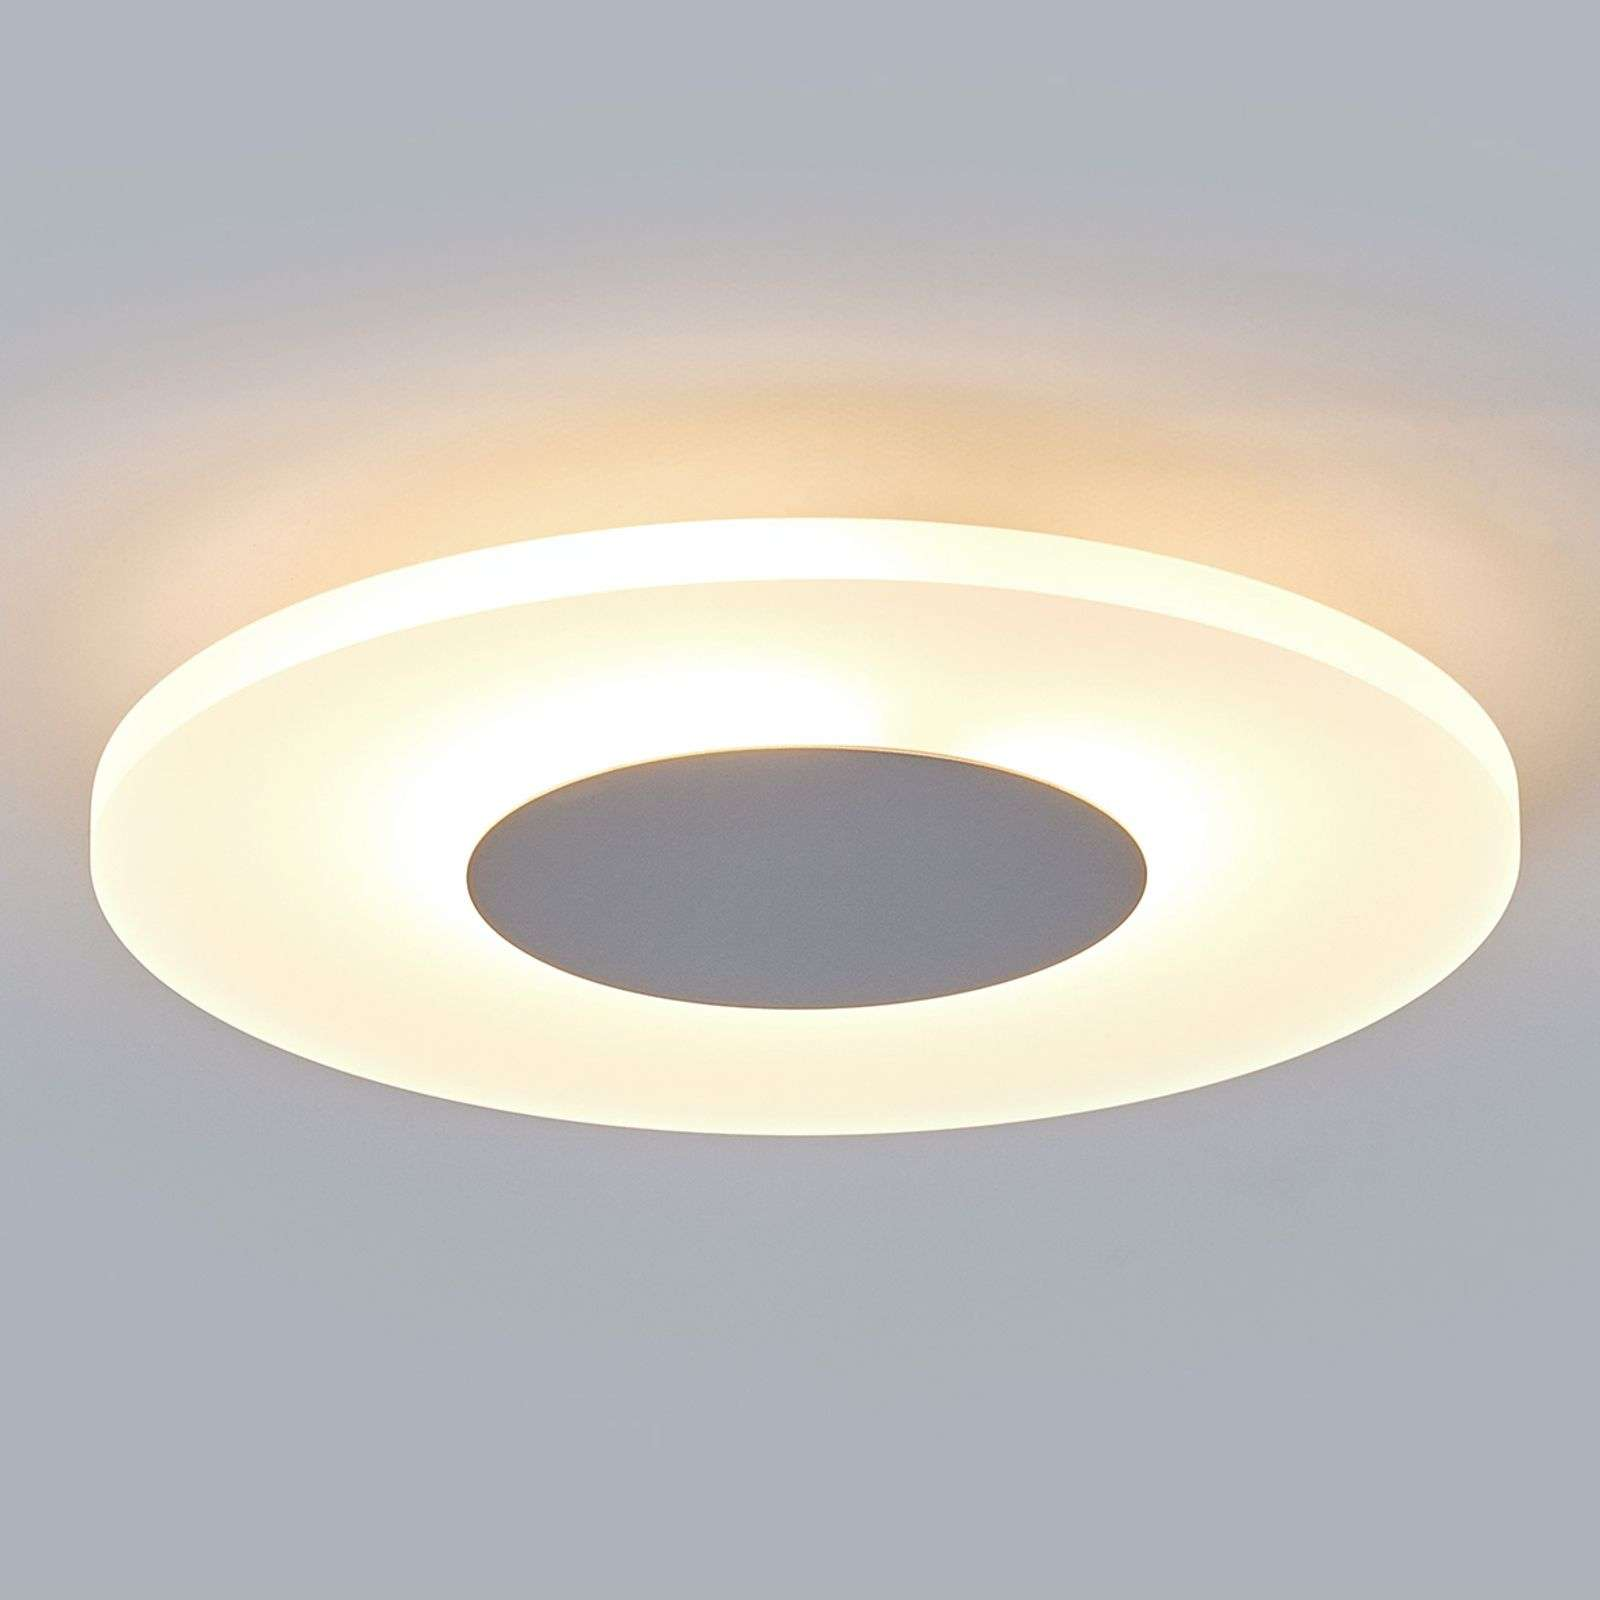 Lampada da soffitto a LED Tarja decorativa